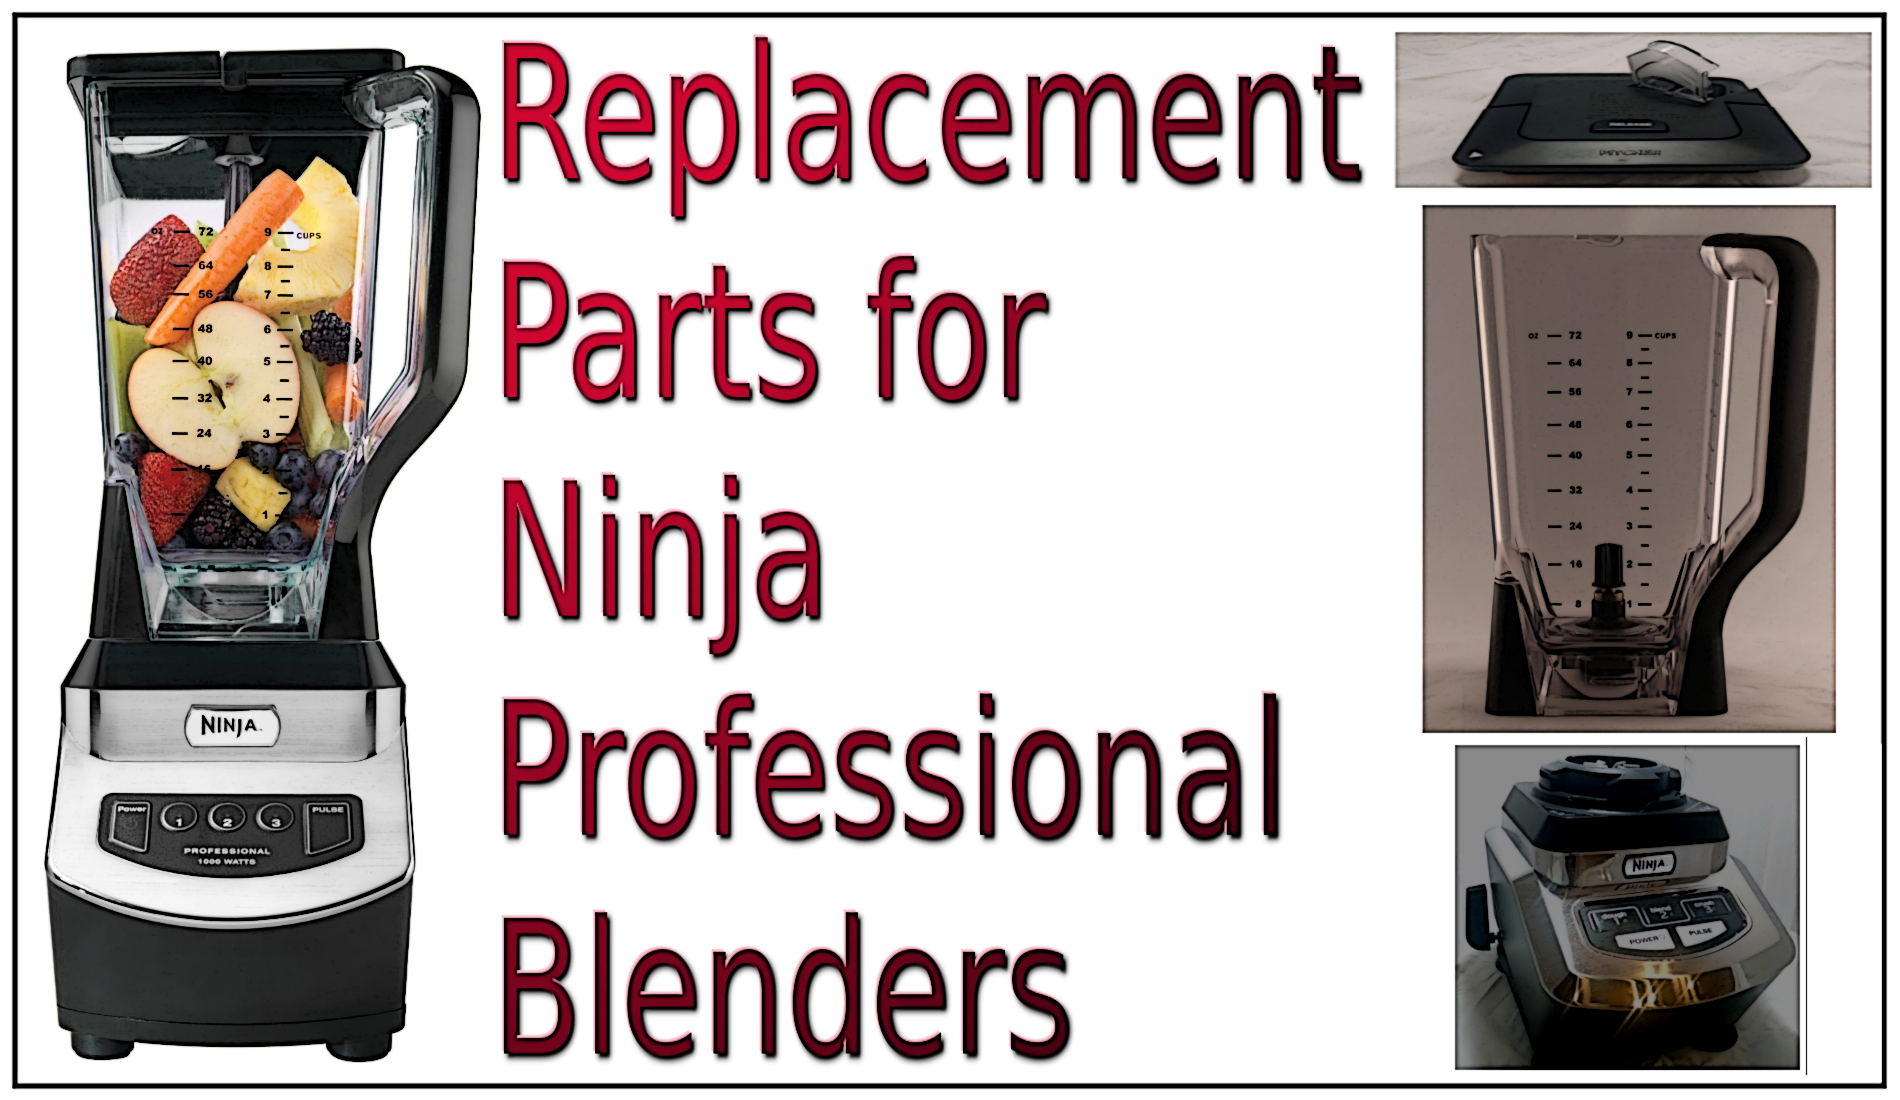 Replacement Parts for Ninja Professional Blenders